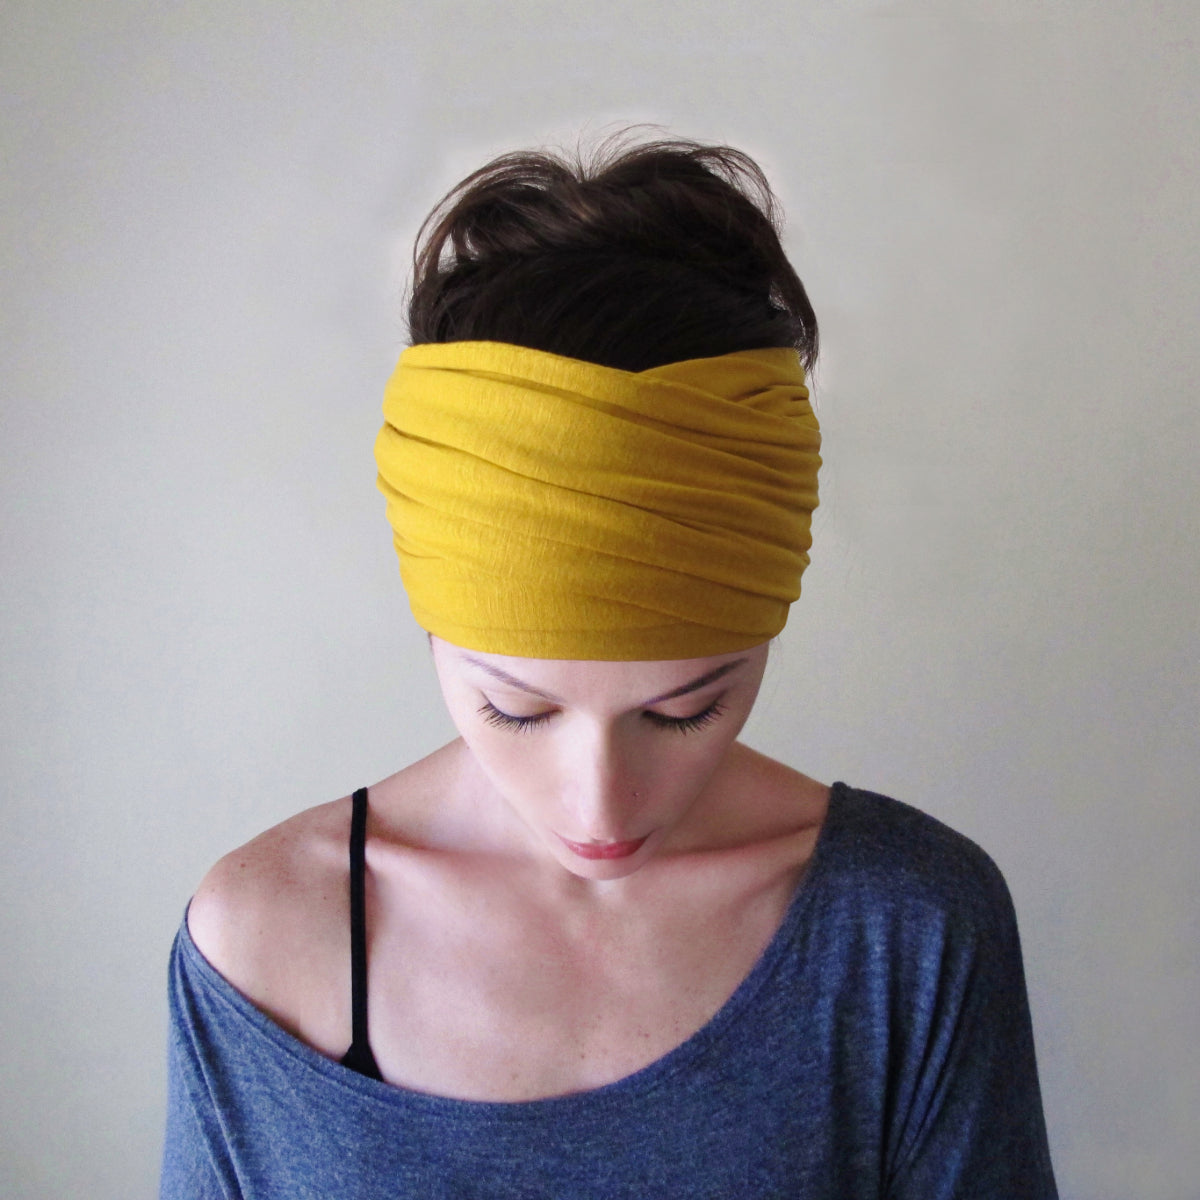 goldenrod-yellow-ecoshag-headscarf